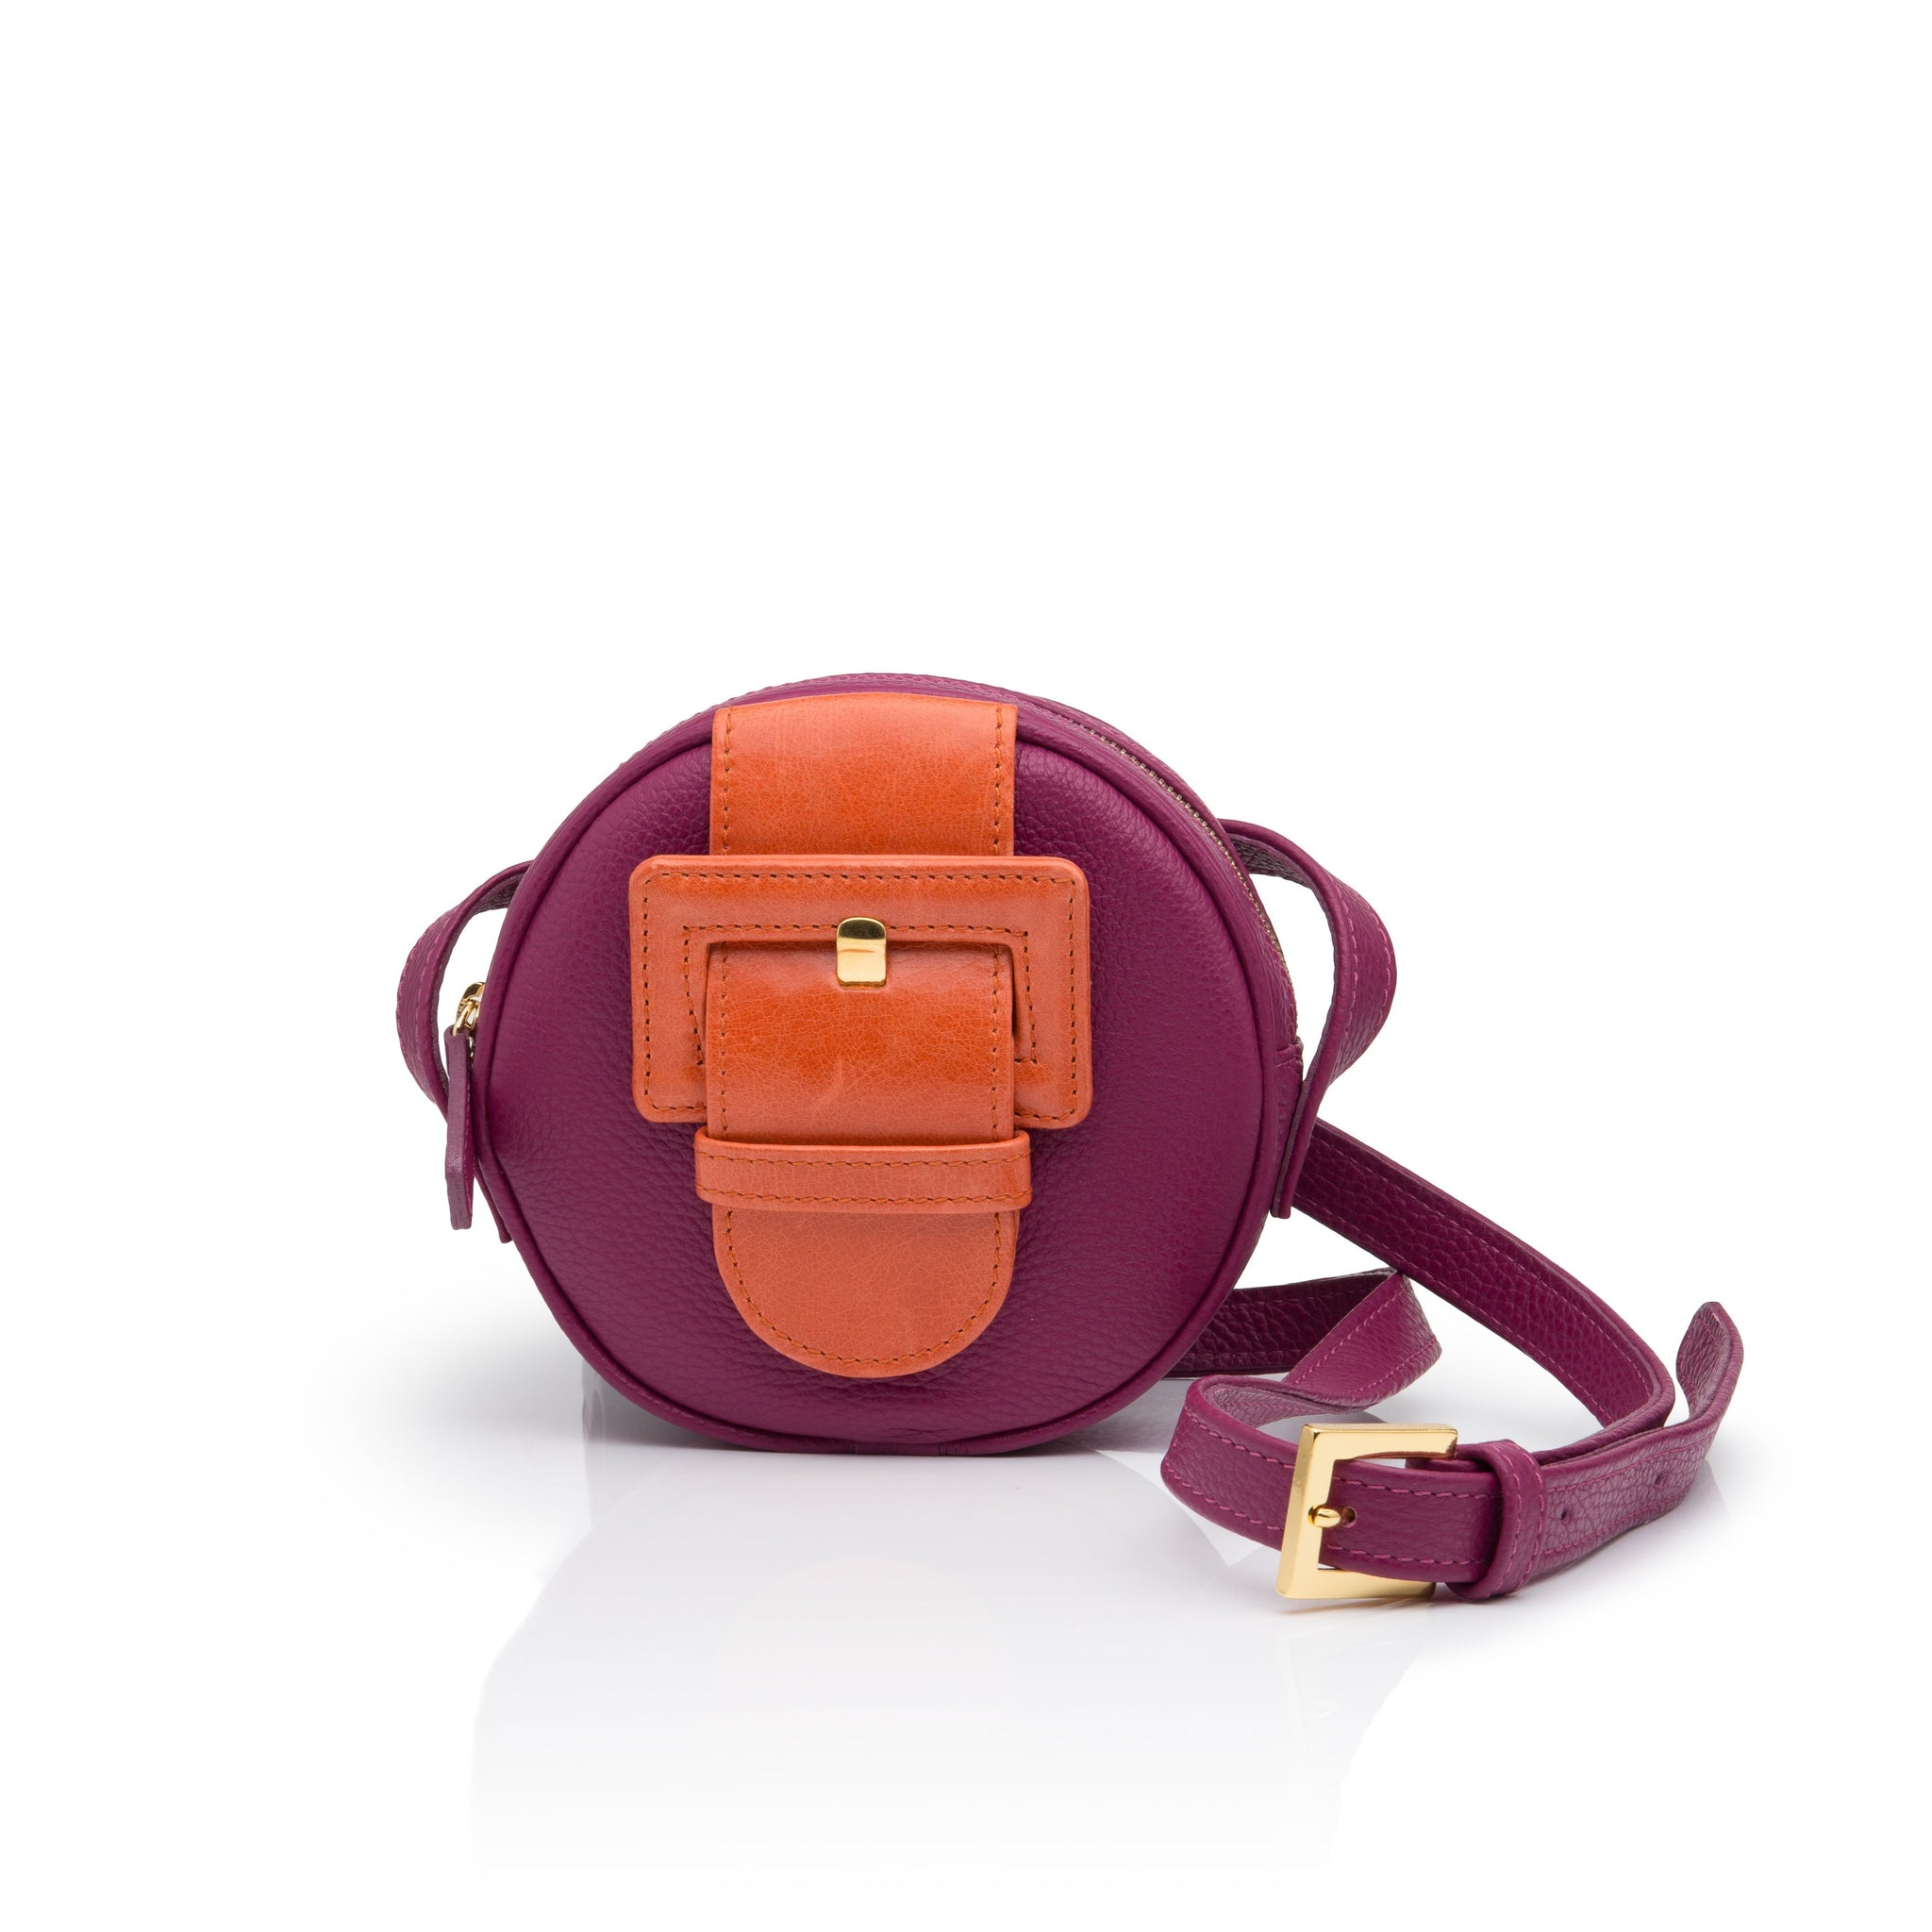 Billie Handbag - Lesetta